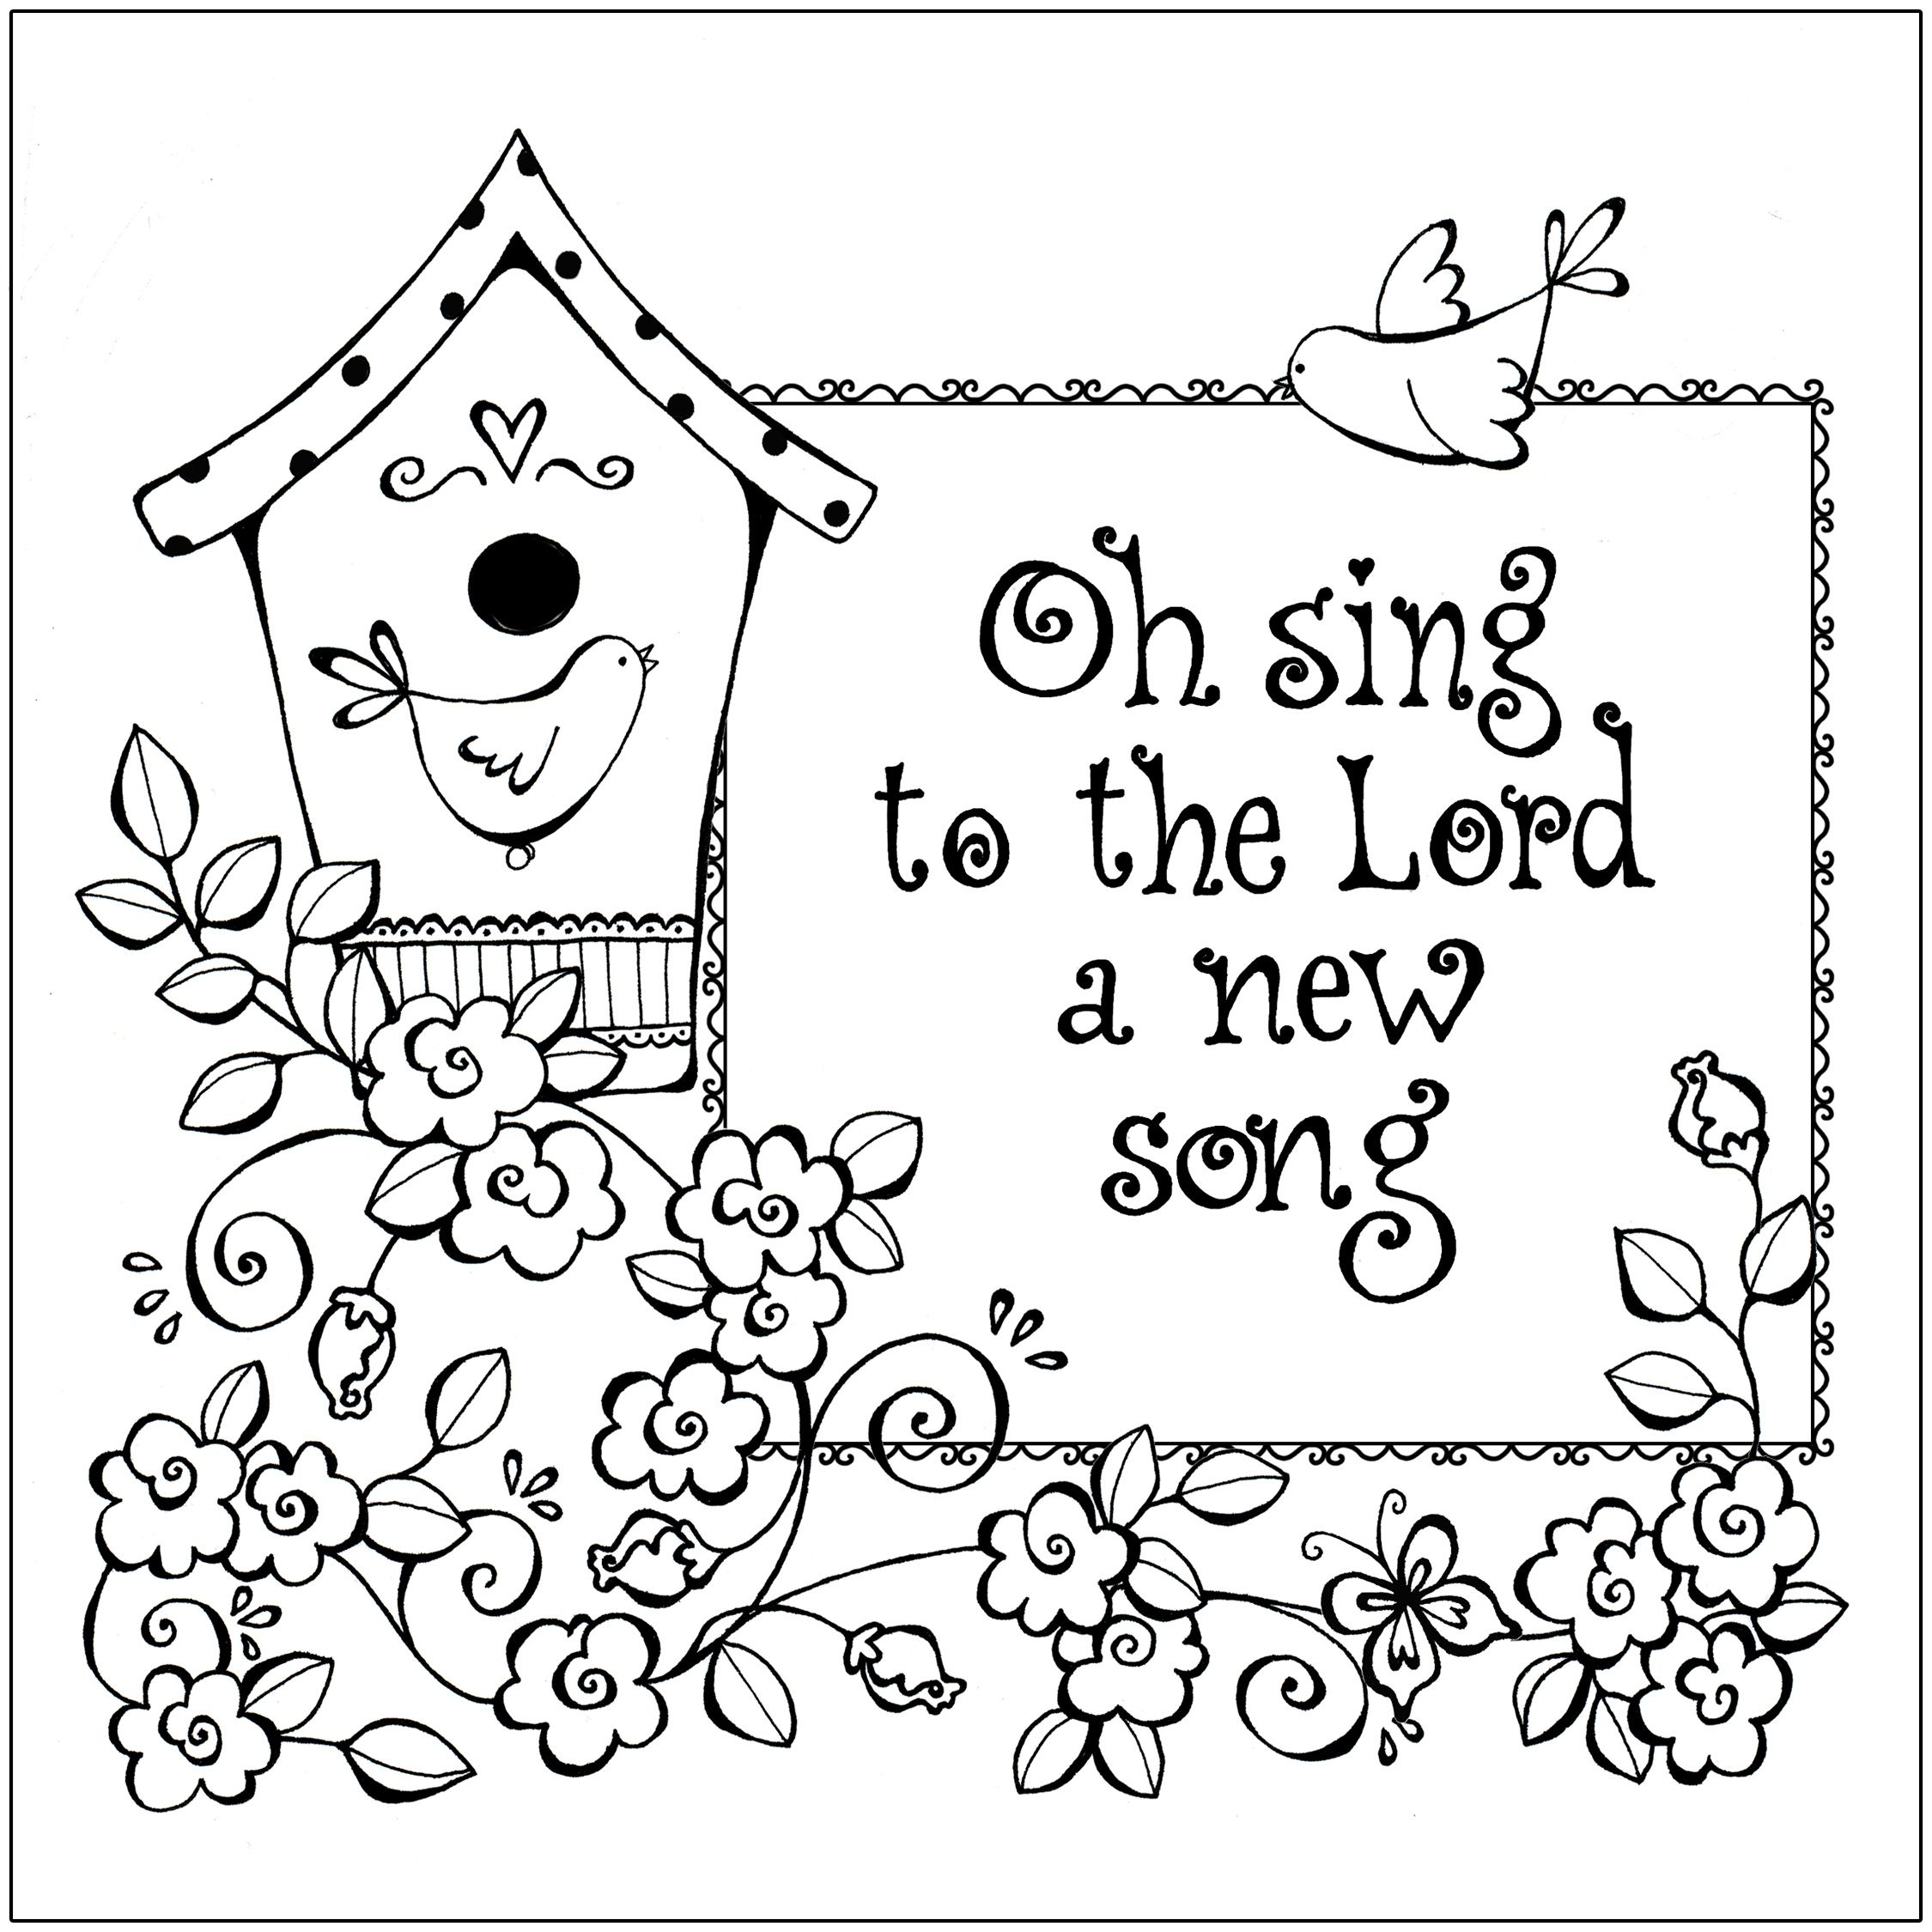 Amazing Colossians 3 23 Coloring Page Bible Pa Unknown to Print Of Awesome isaac and Rebekah Coloring Pages Design Collection